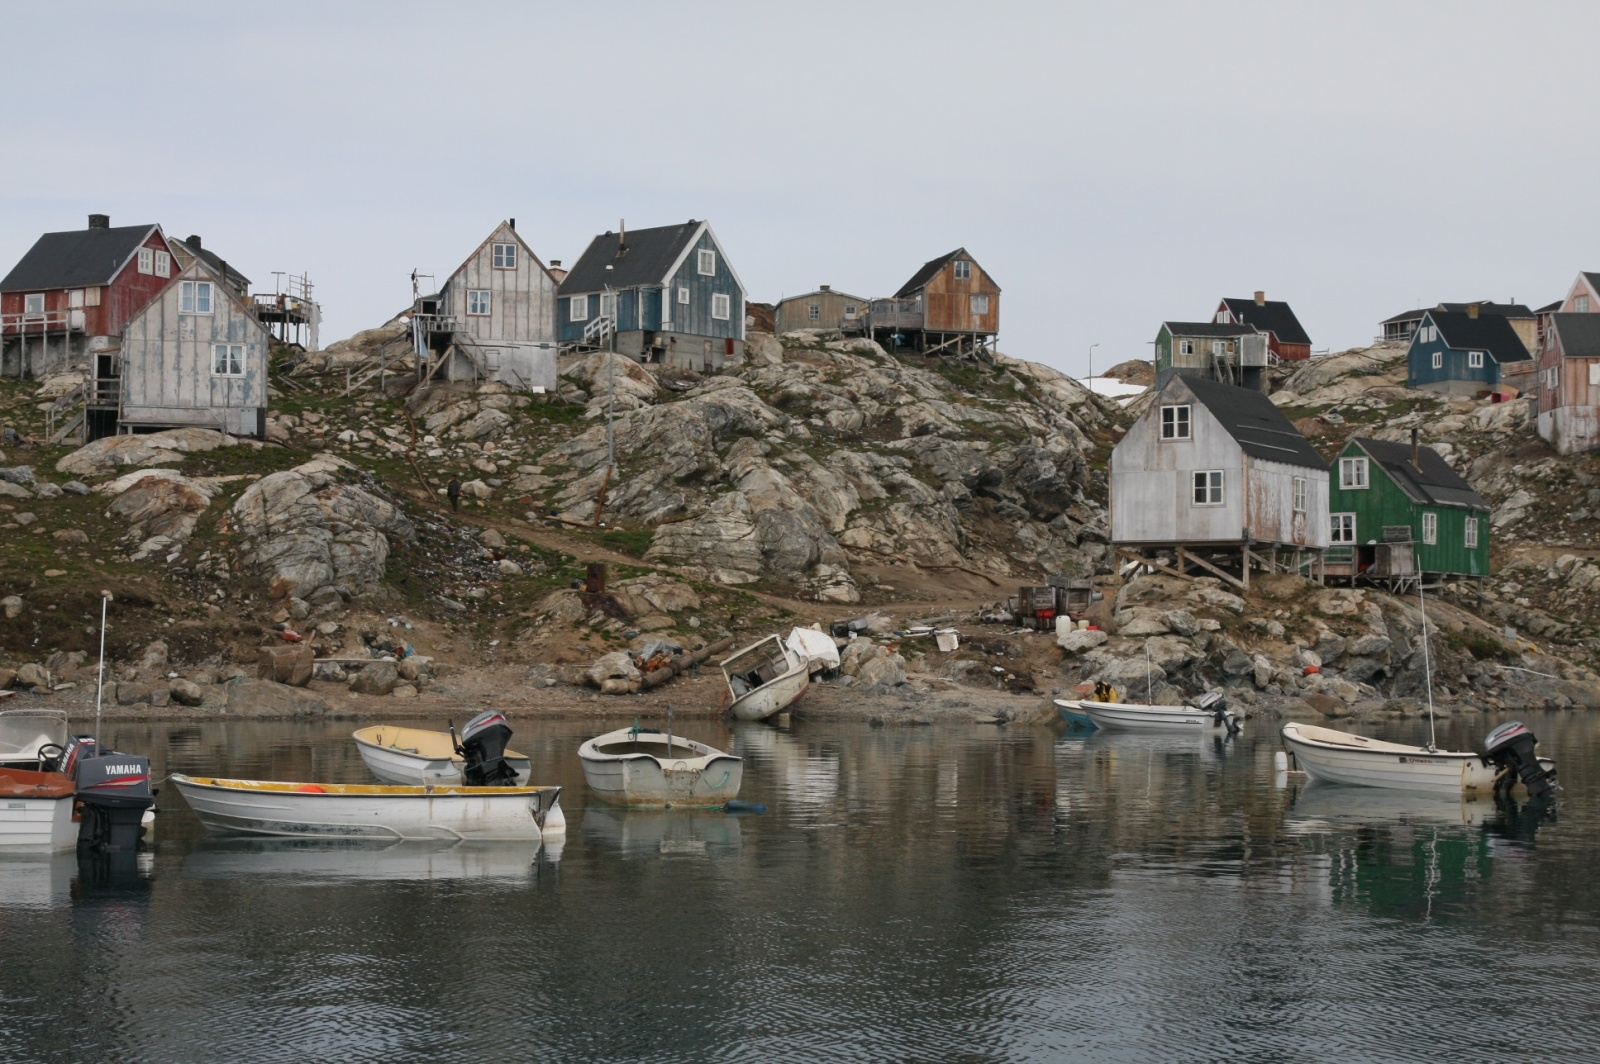 Tiniteqilaq village, ~150 inhabitants